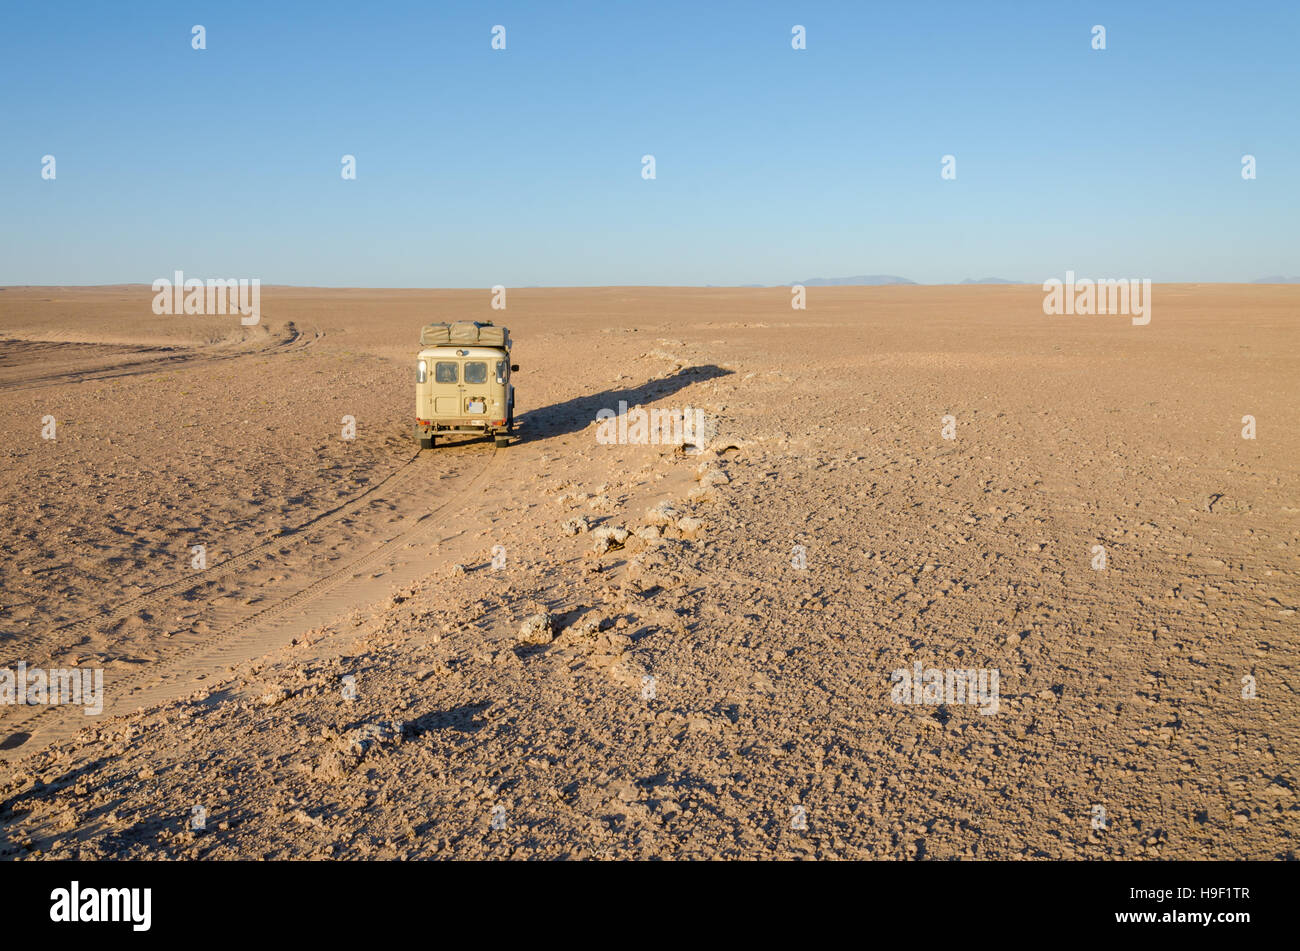 4x4 offroad vehicle driving in empty flat and rocky Namib Desert of Angola. - Stock Image